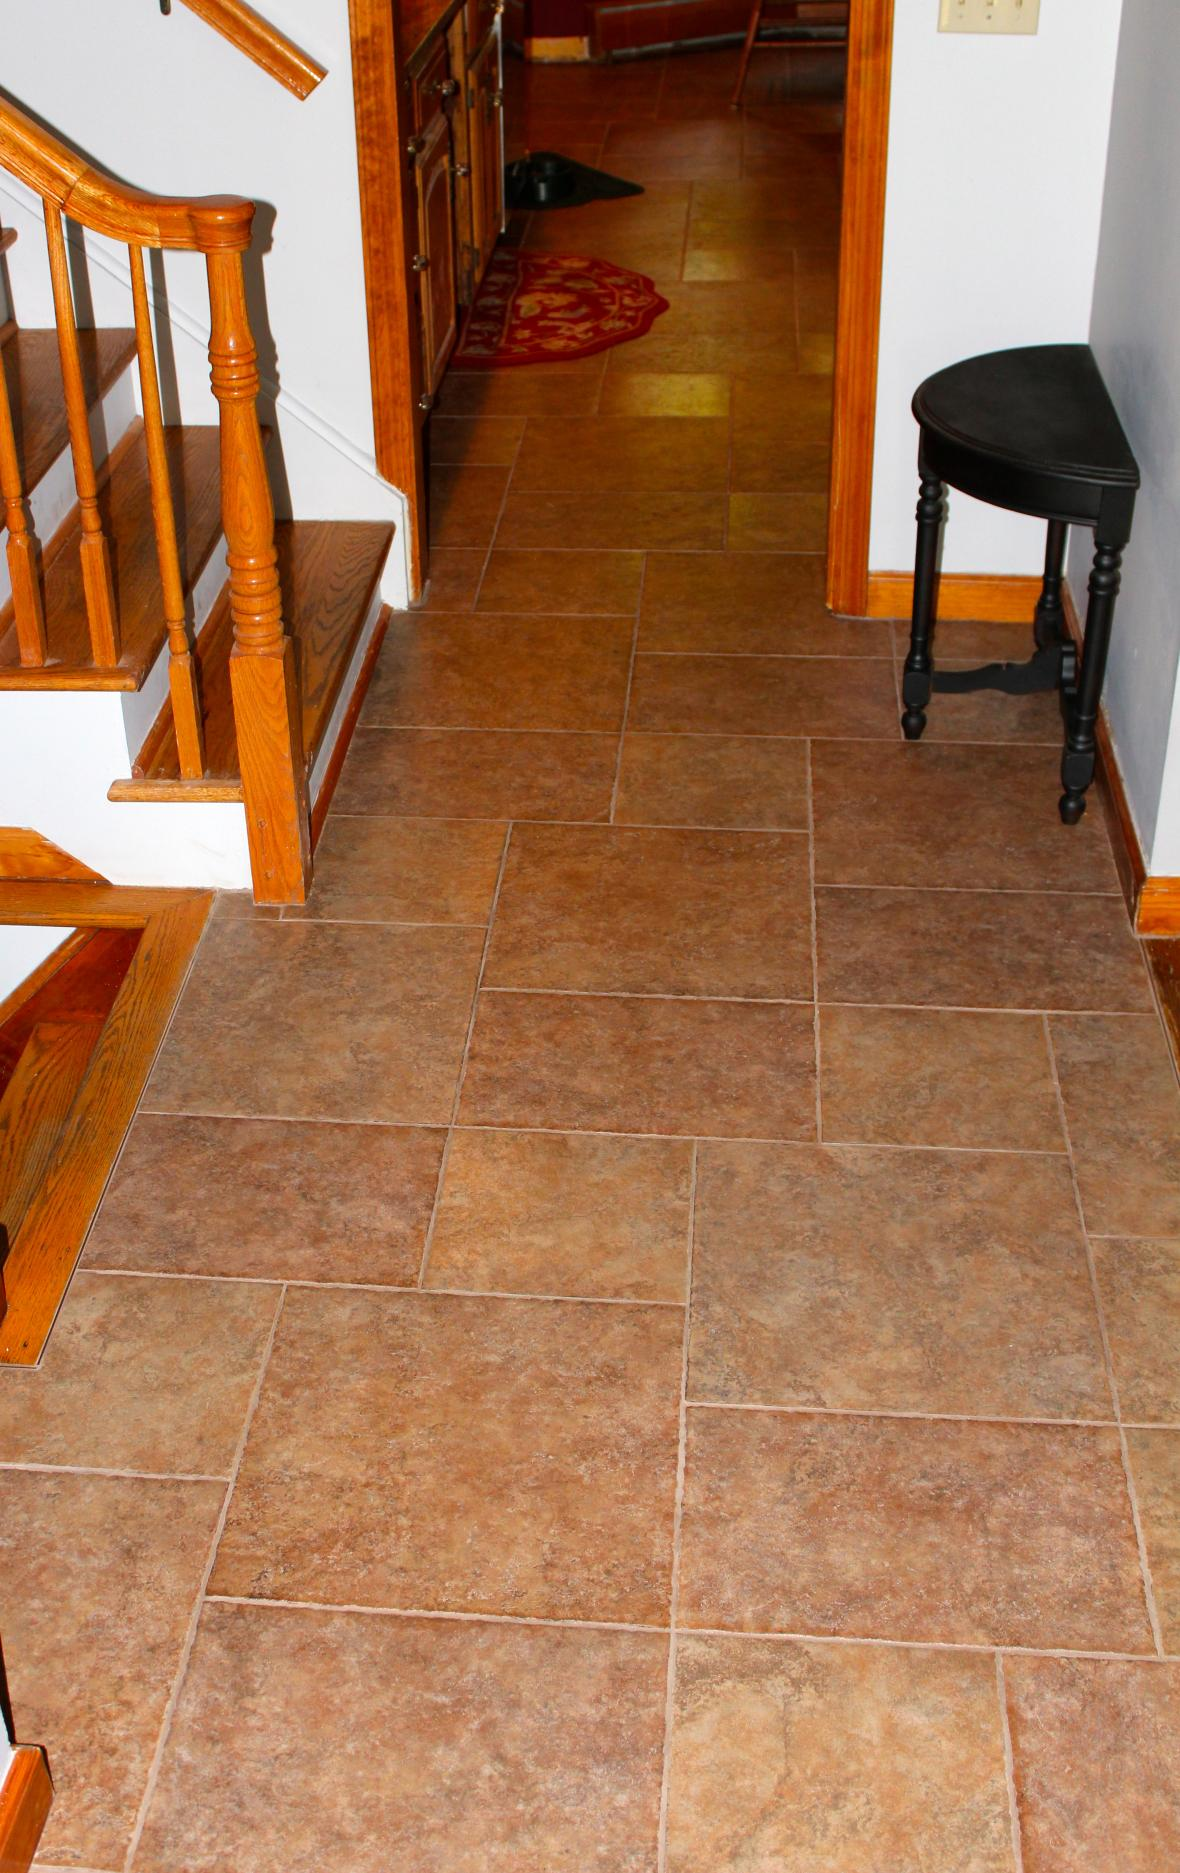 Best Flooring In Kitchen Best Kitchen Floor Cleaner Our Services The Maids In Denver Best